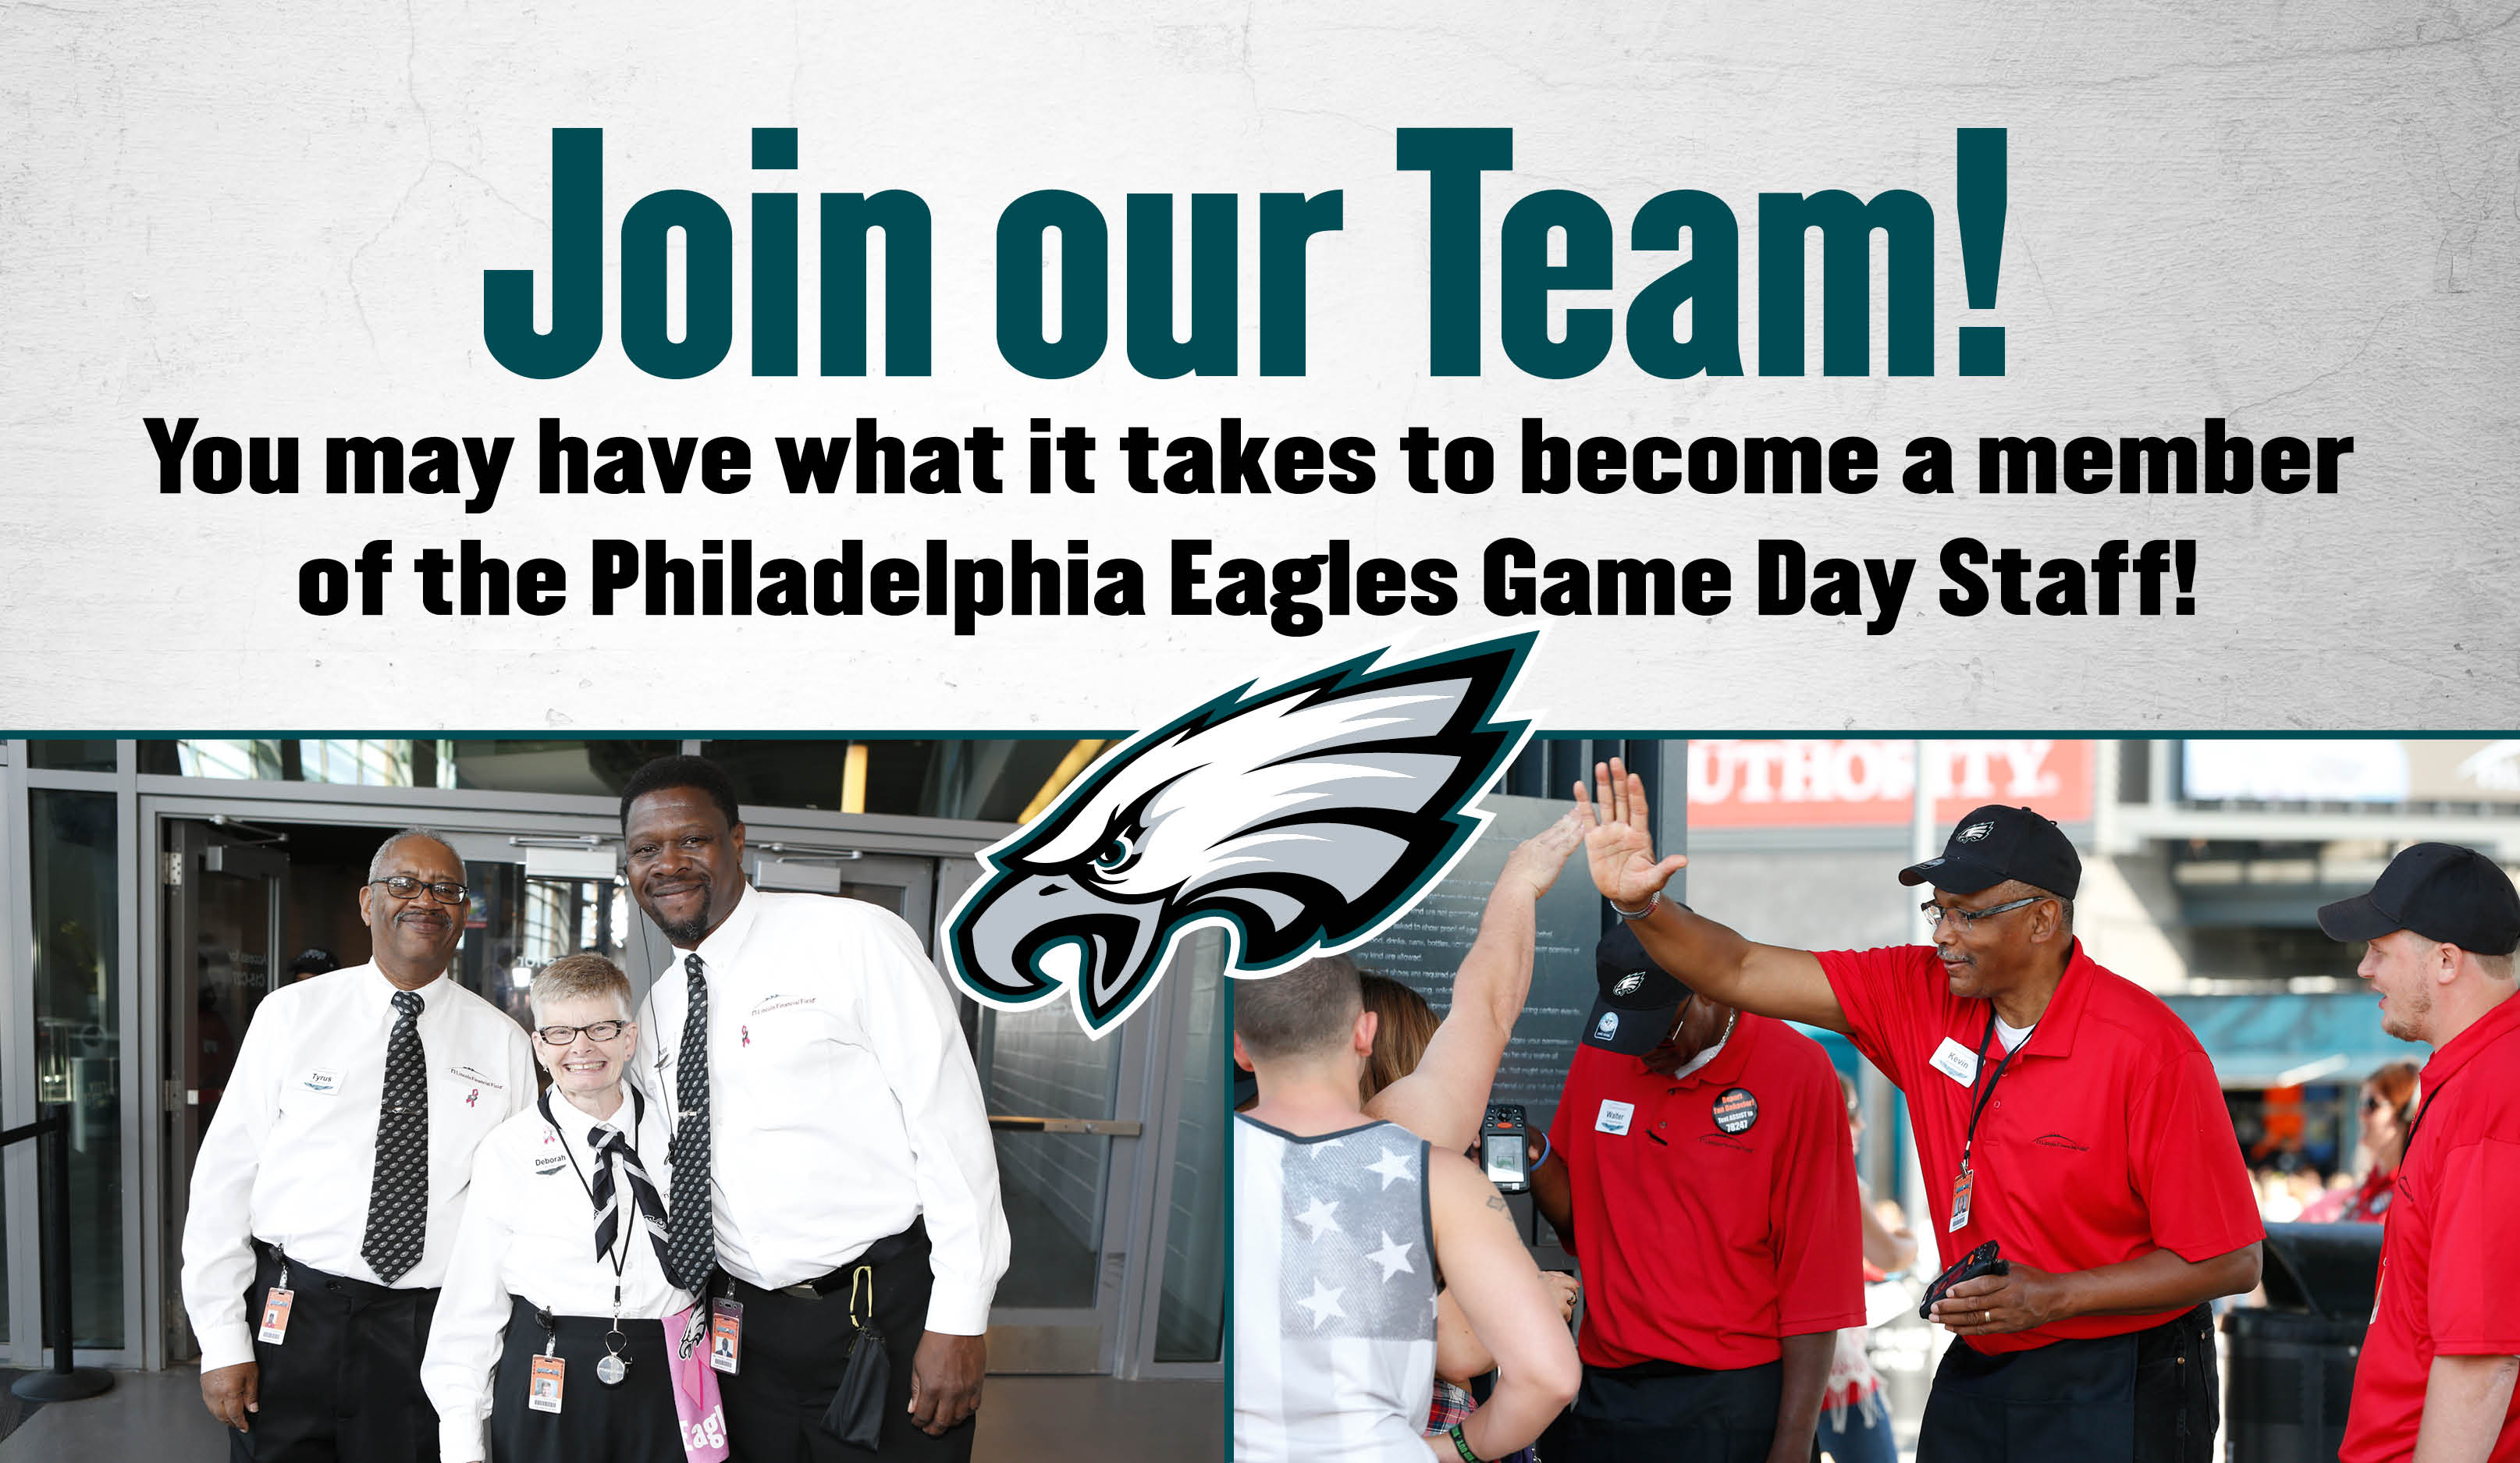 Game Day Staff Lincoln Financial Field